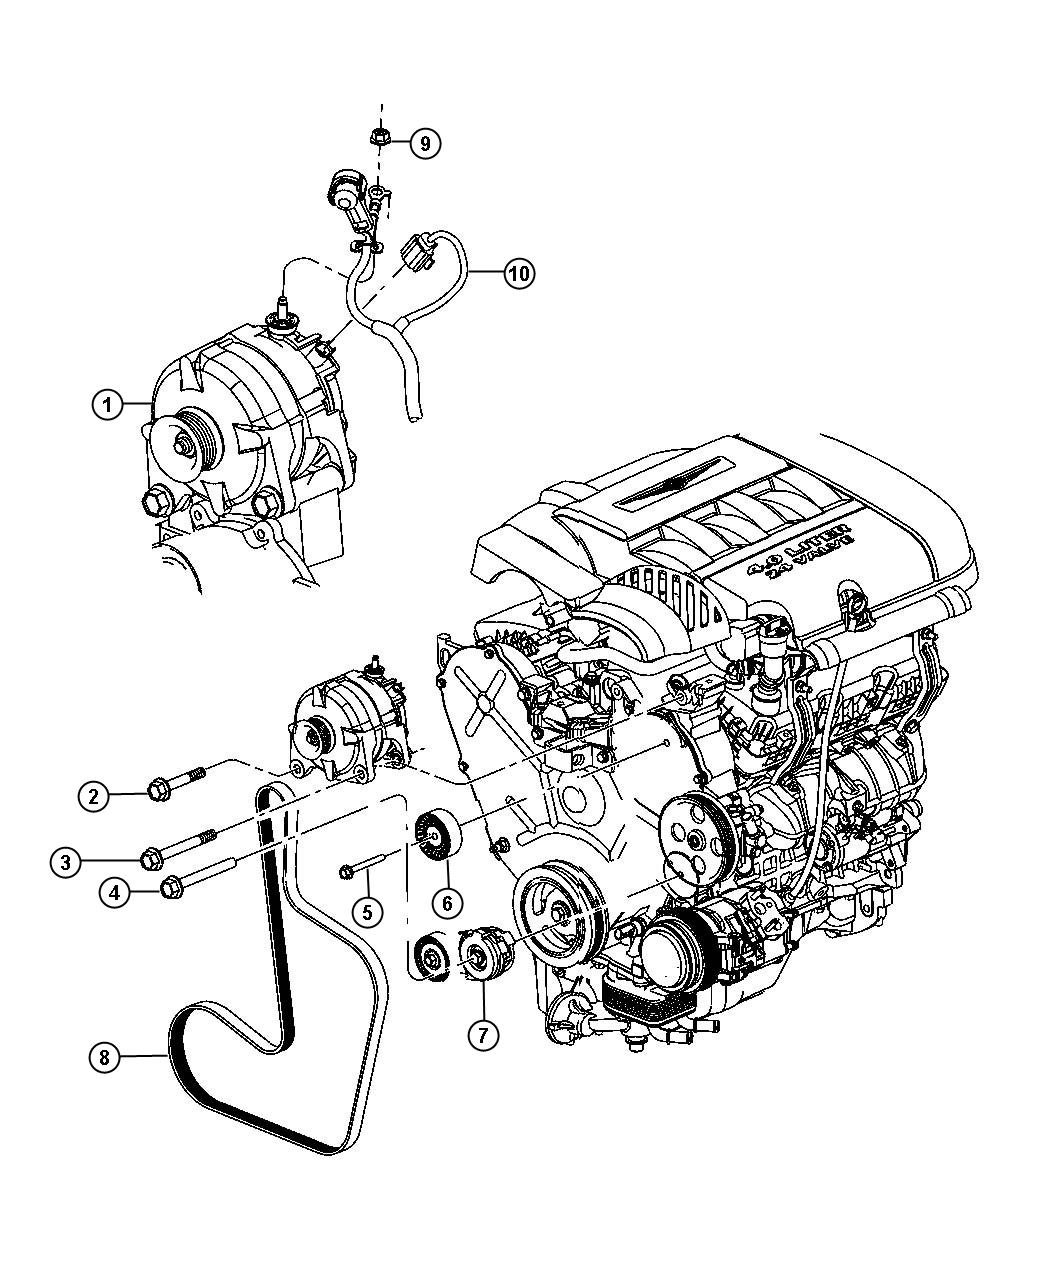 Service manual [2007 Chrysler Pacifica Timing Cover